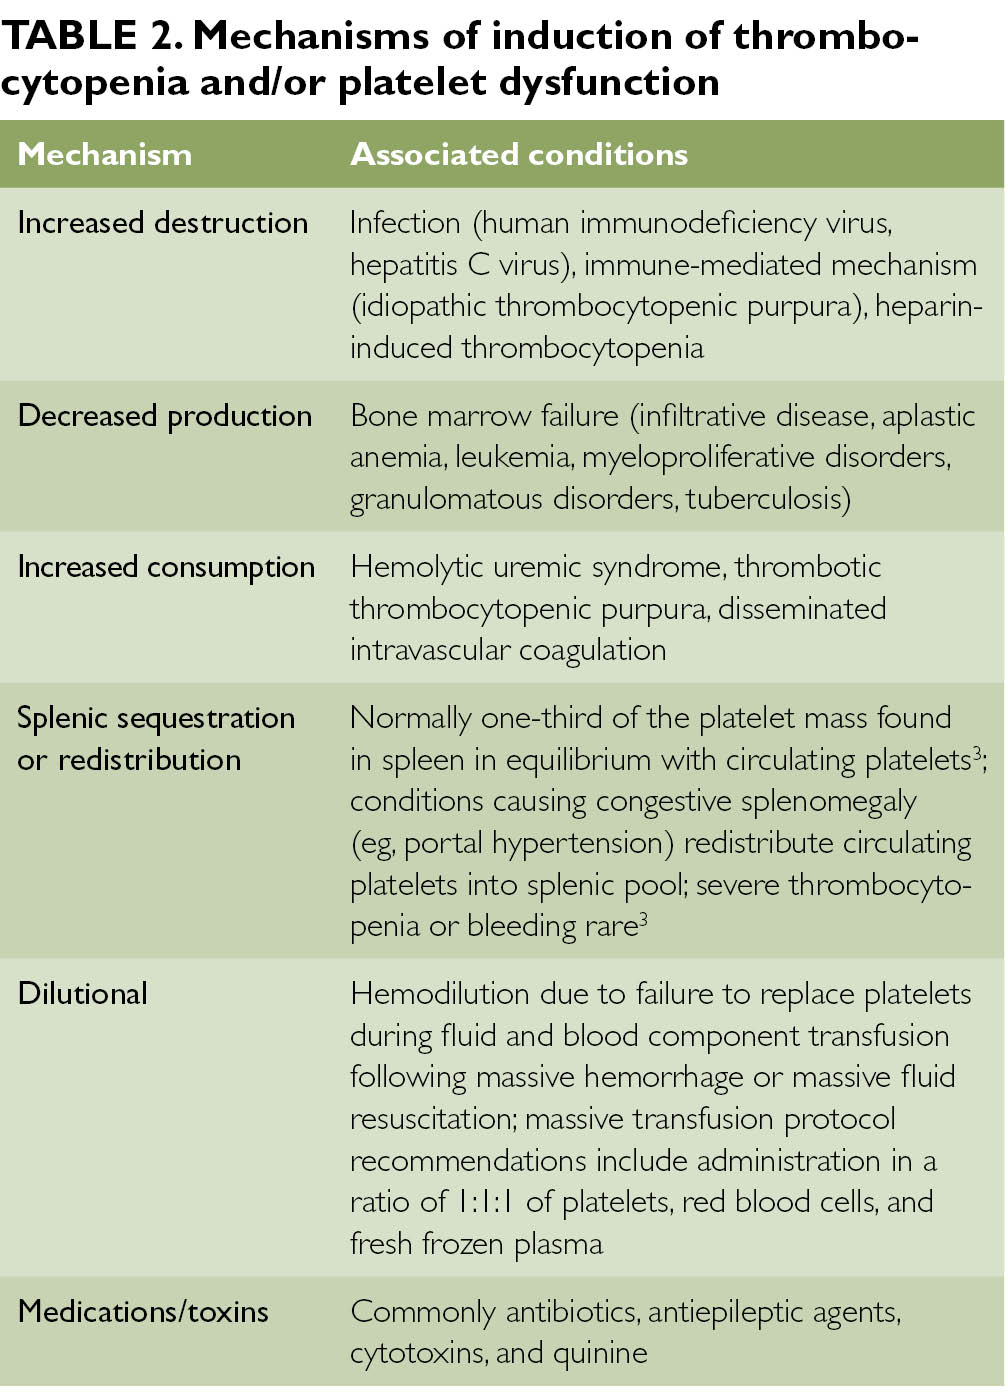 Assessing And Treating Disorders Of Primary Hemostasis Page 3 Of 7 Clinical Advisor